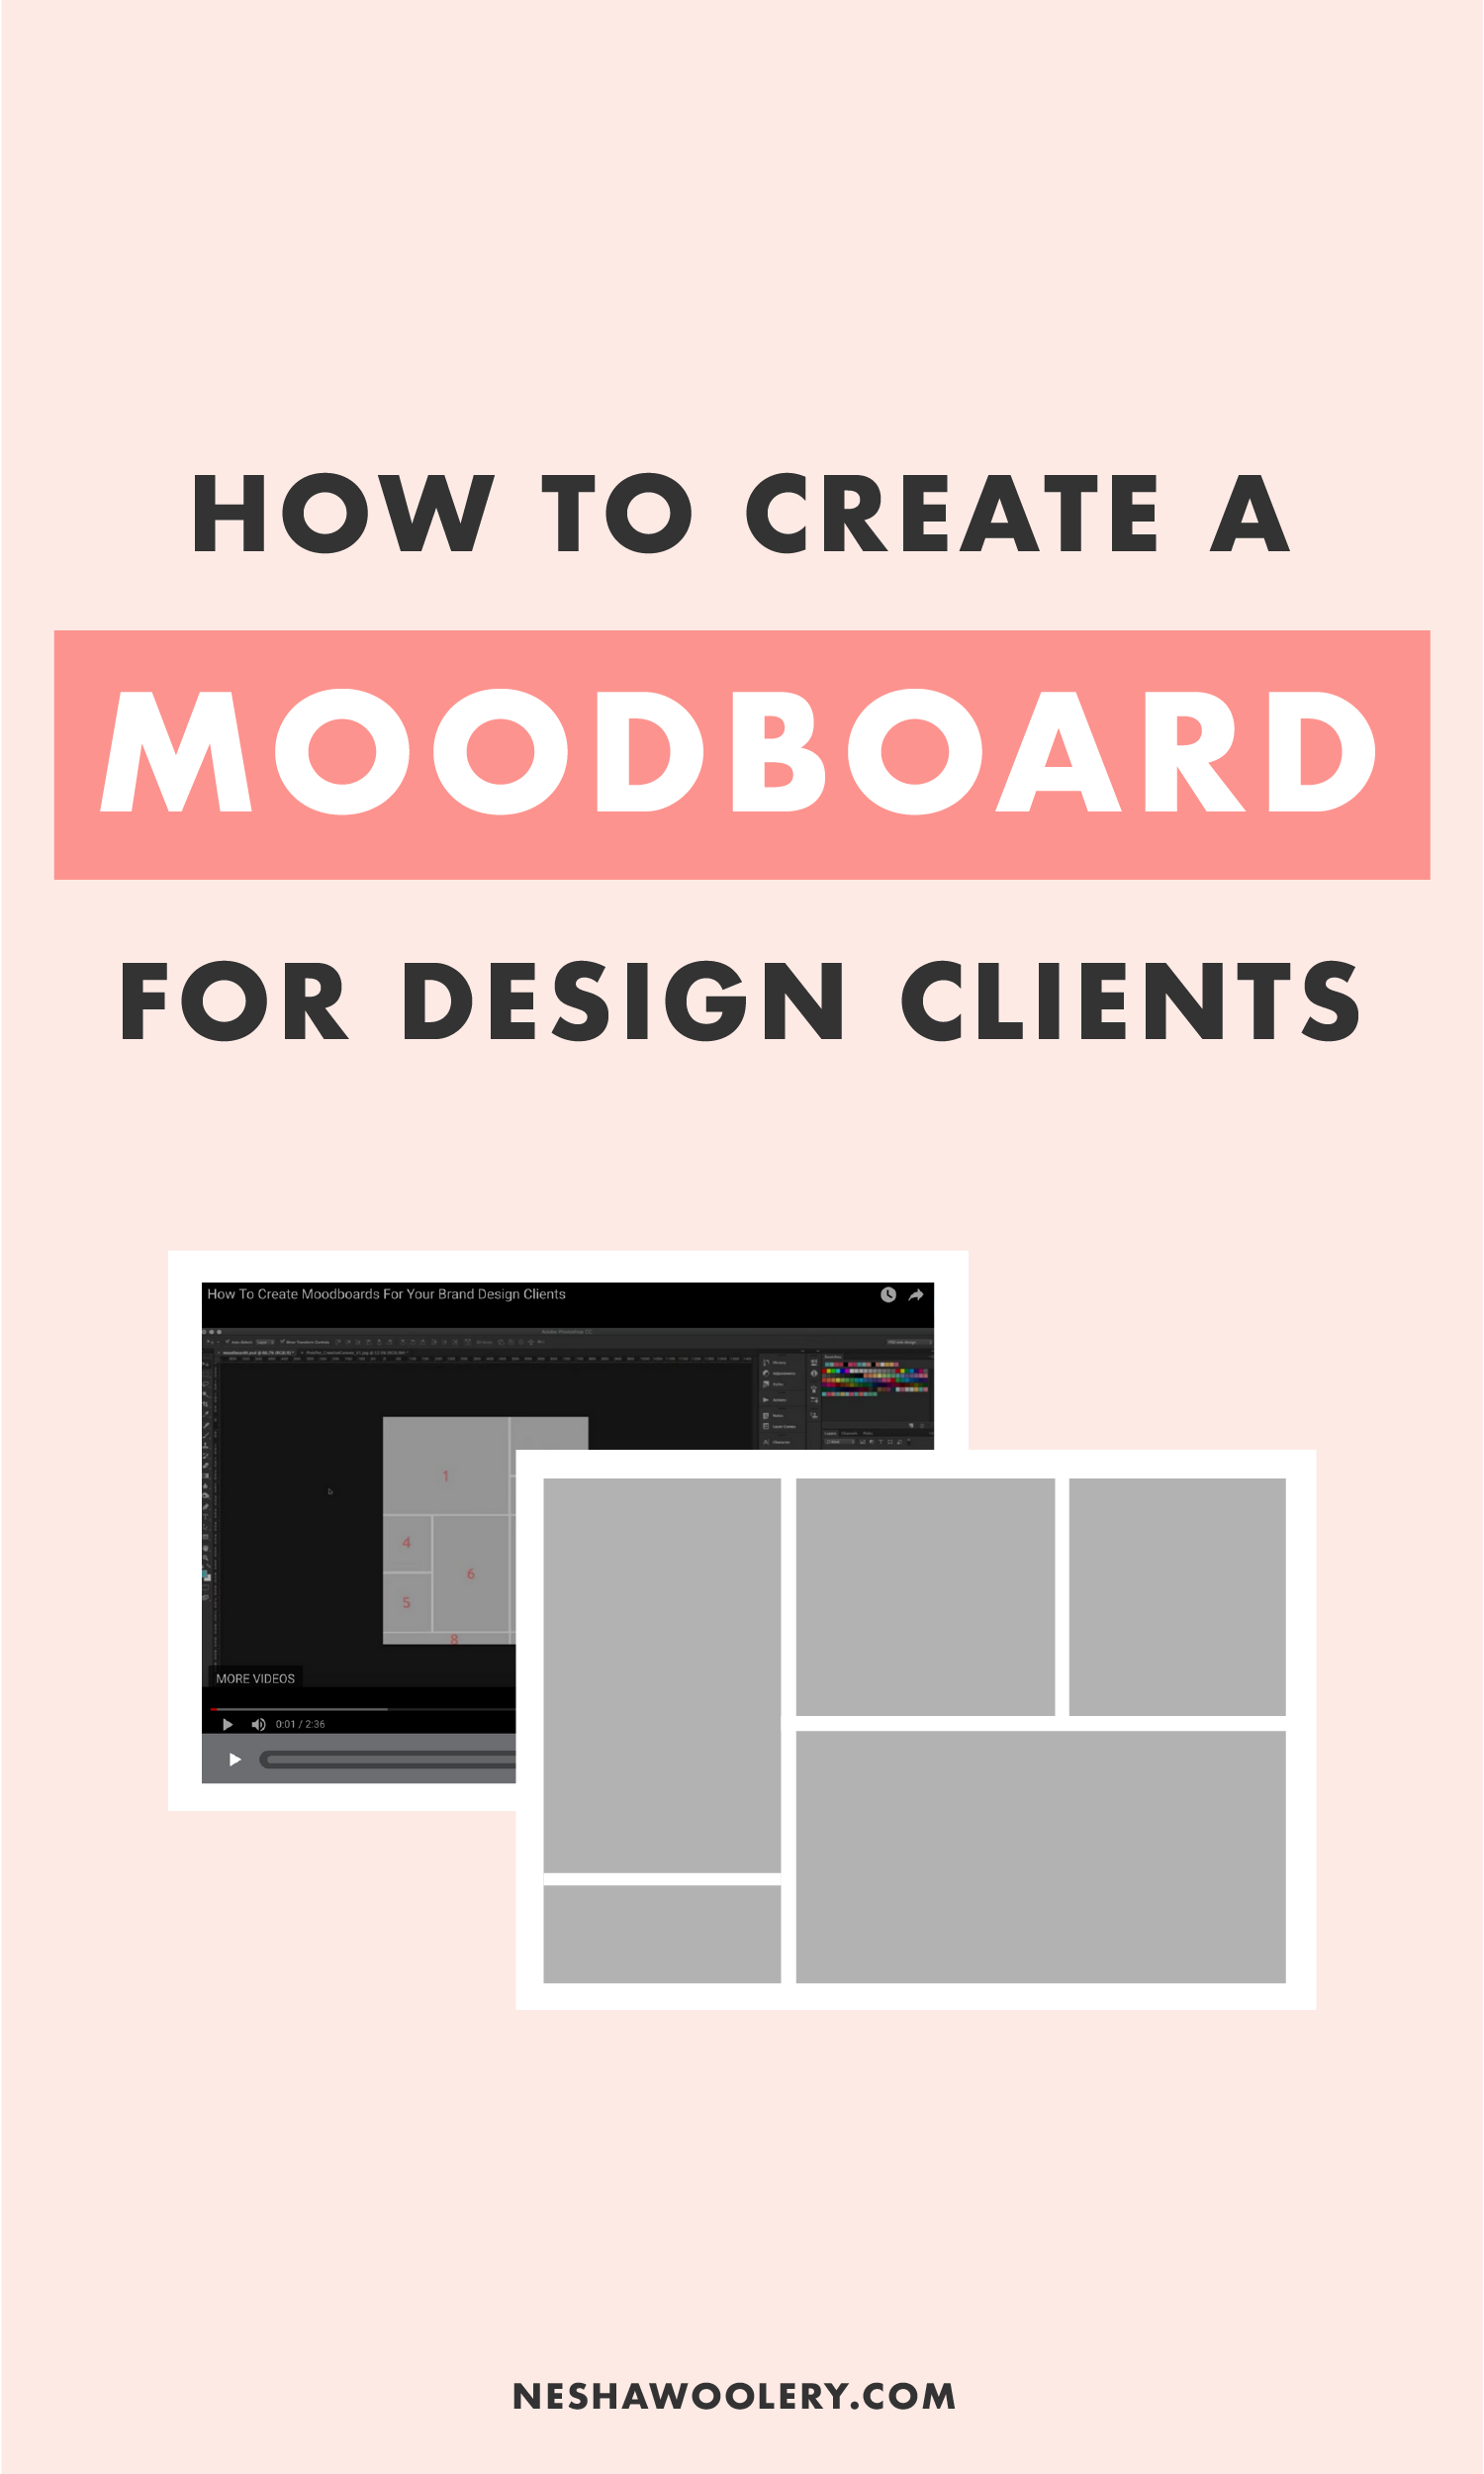 how to create a moodboard for design clients-02.png